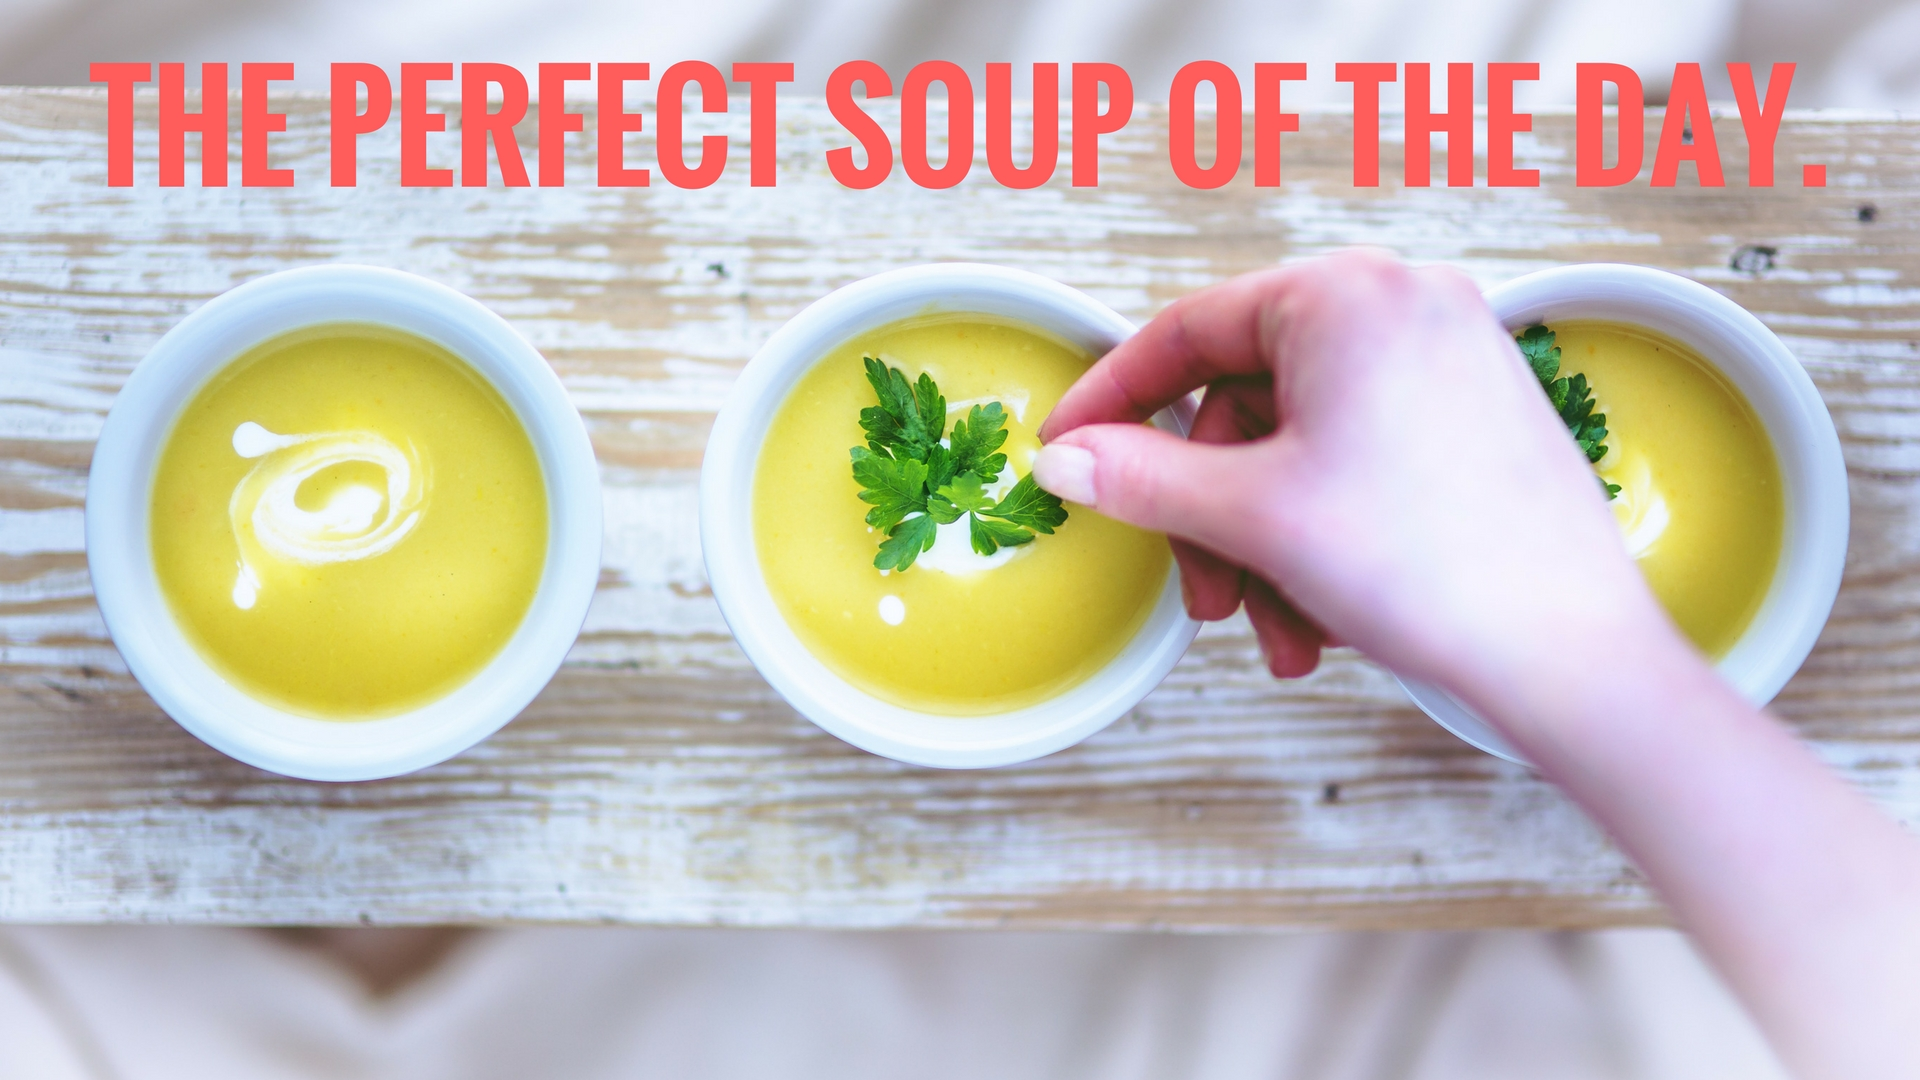 The Perfect Soup of the Day